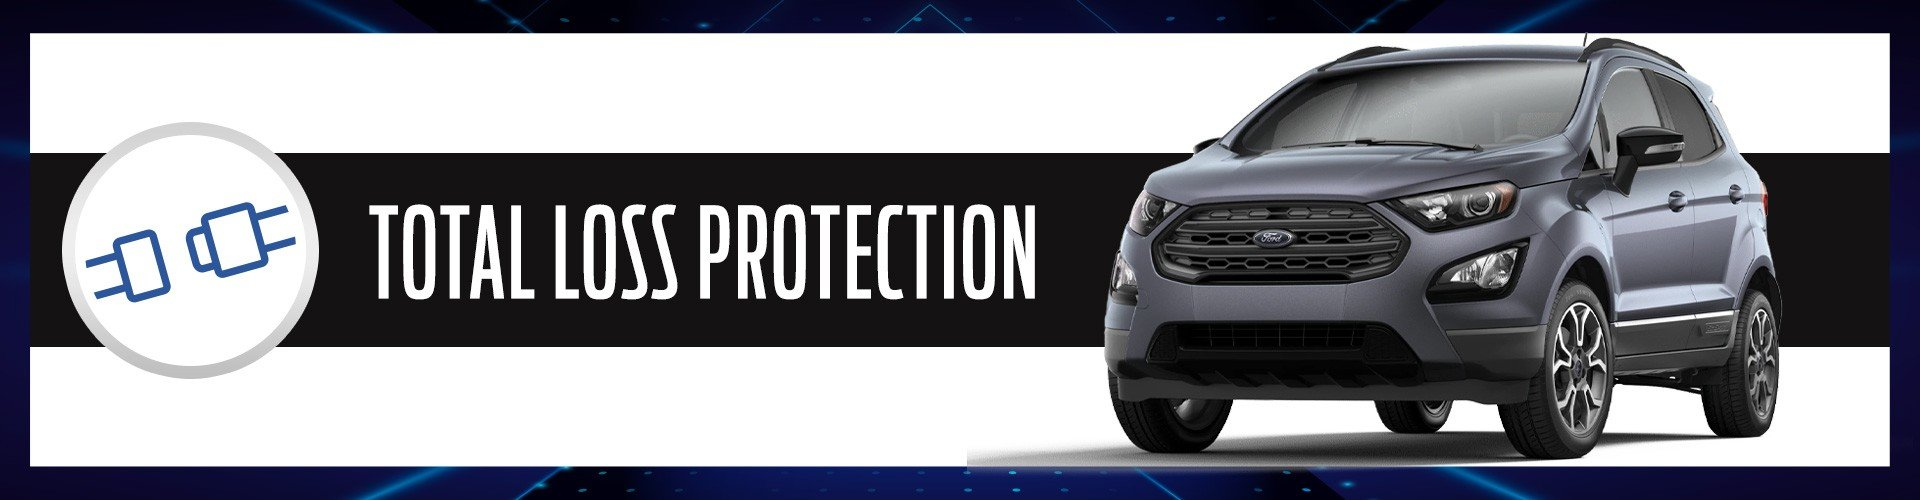 Ford protection package